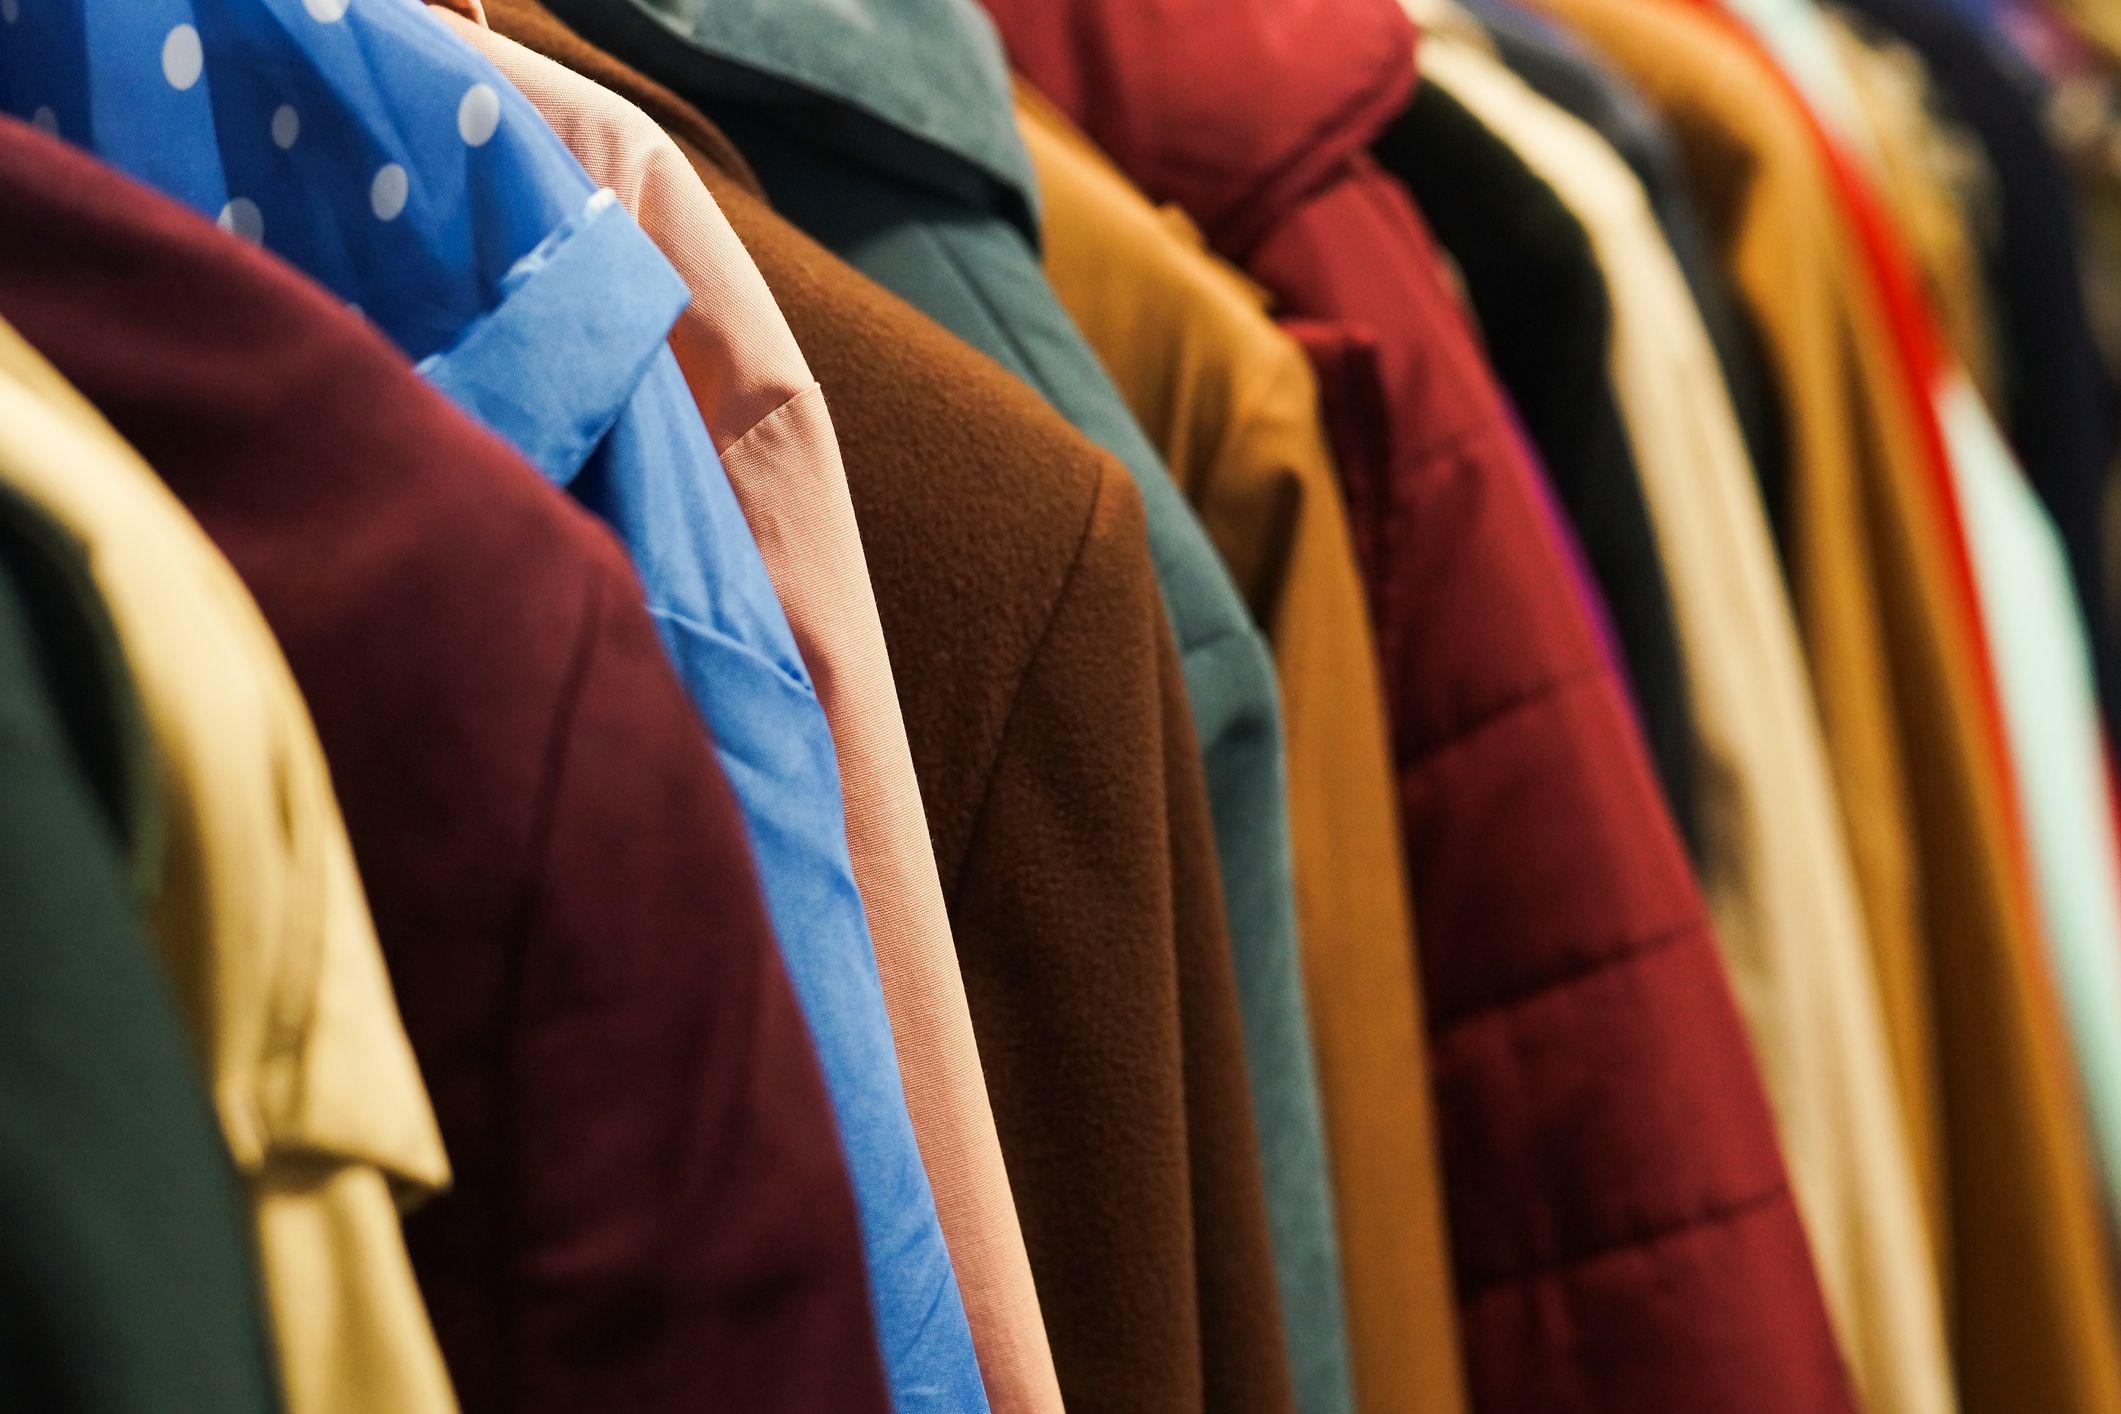 Where to donate your old winter coats this November